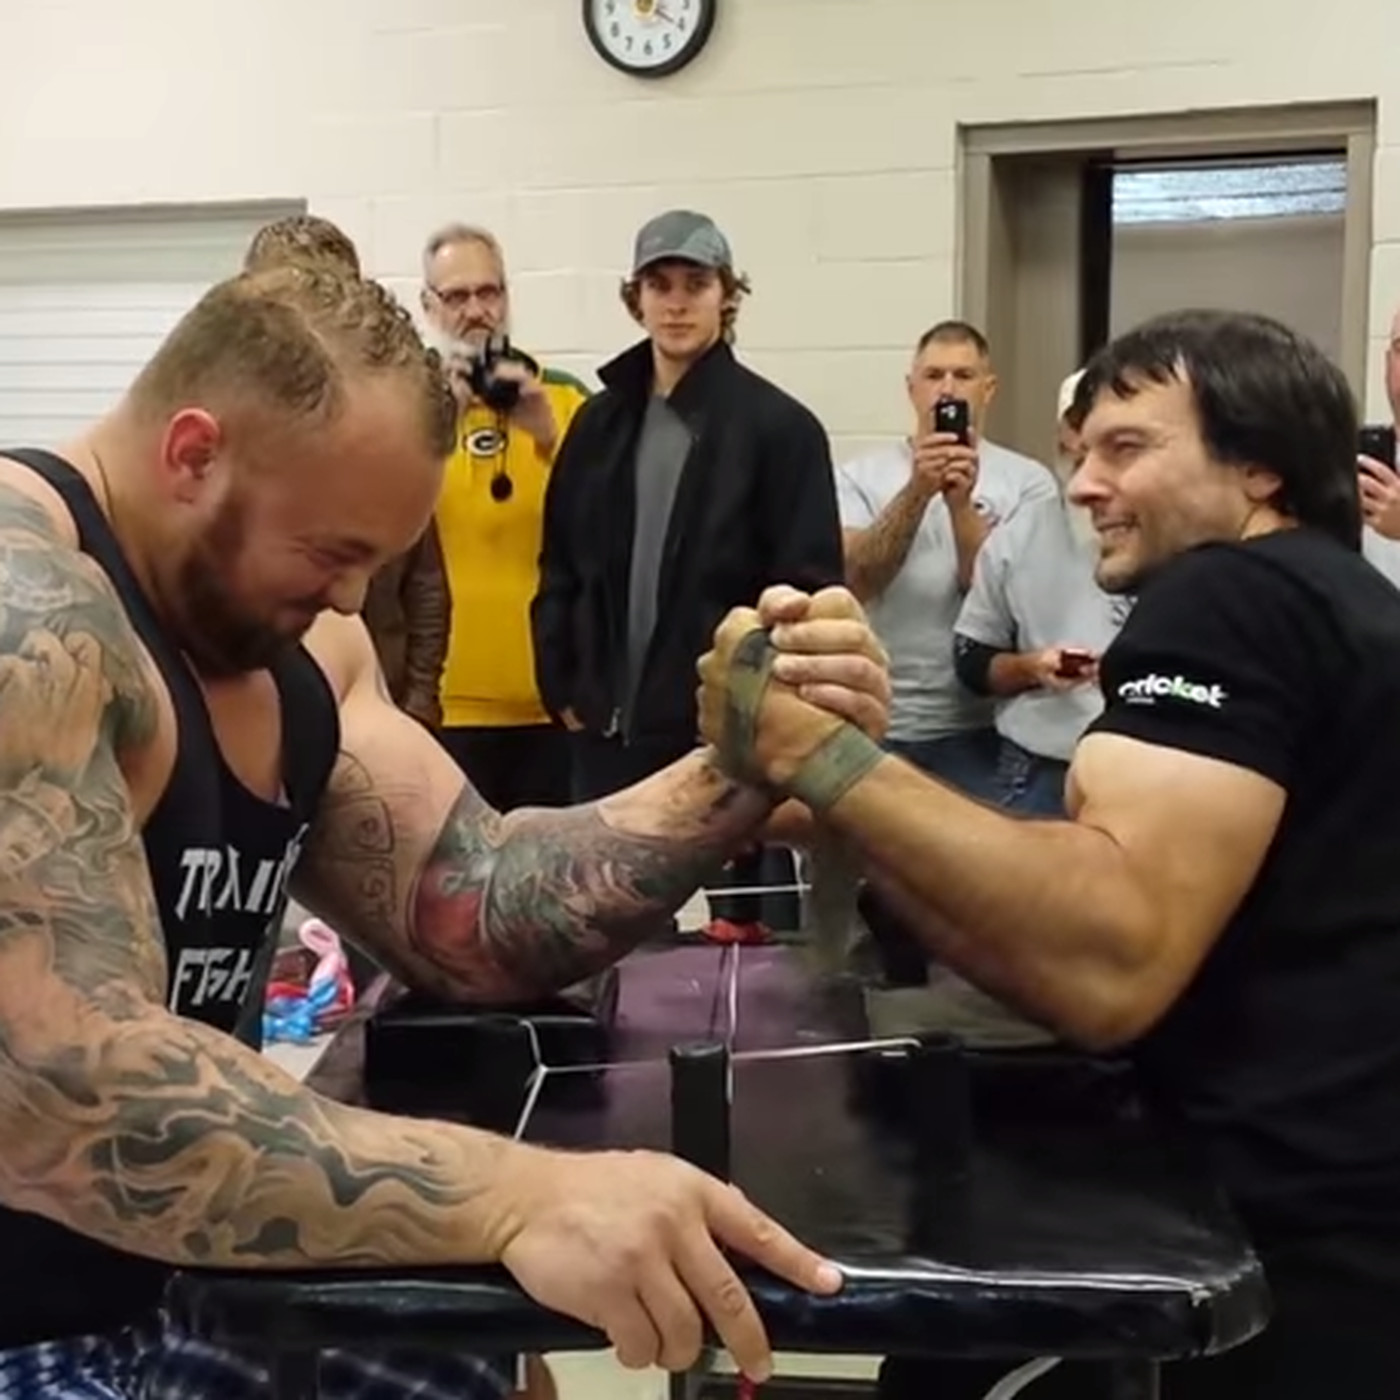 The Mountain' from 'Game of Thrones' gets dominated in arm